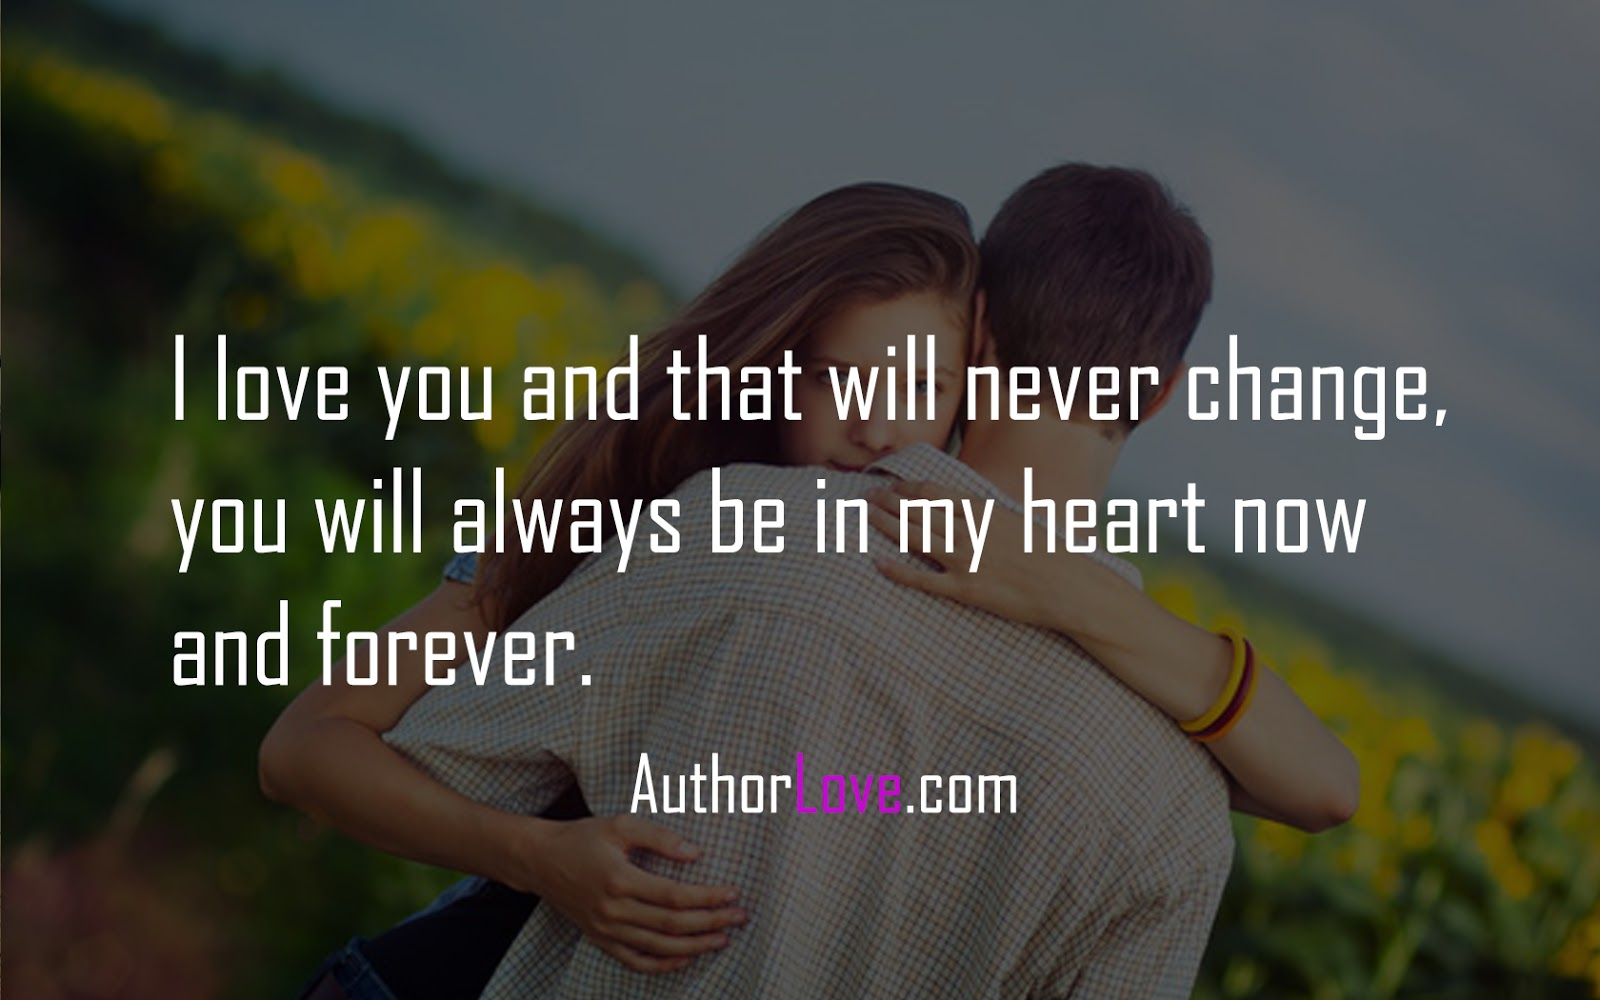 Romantic I Love You Quotes I Love You And That Will Never Change  Love Quotes  Author Love